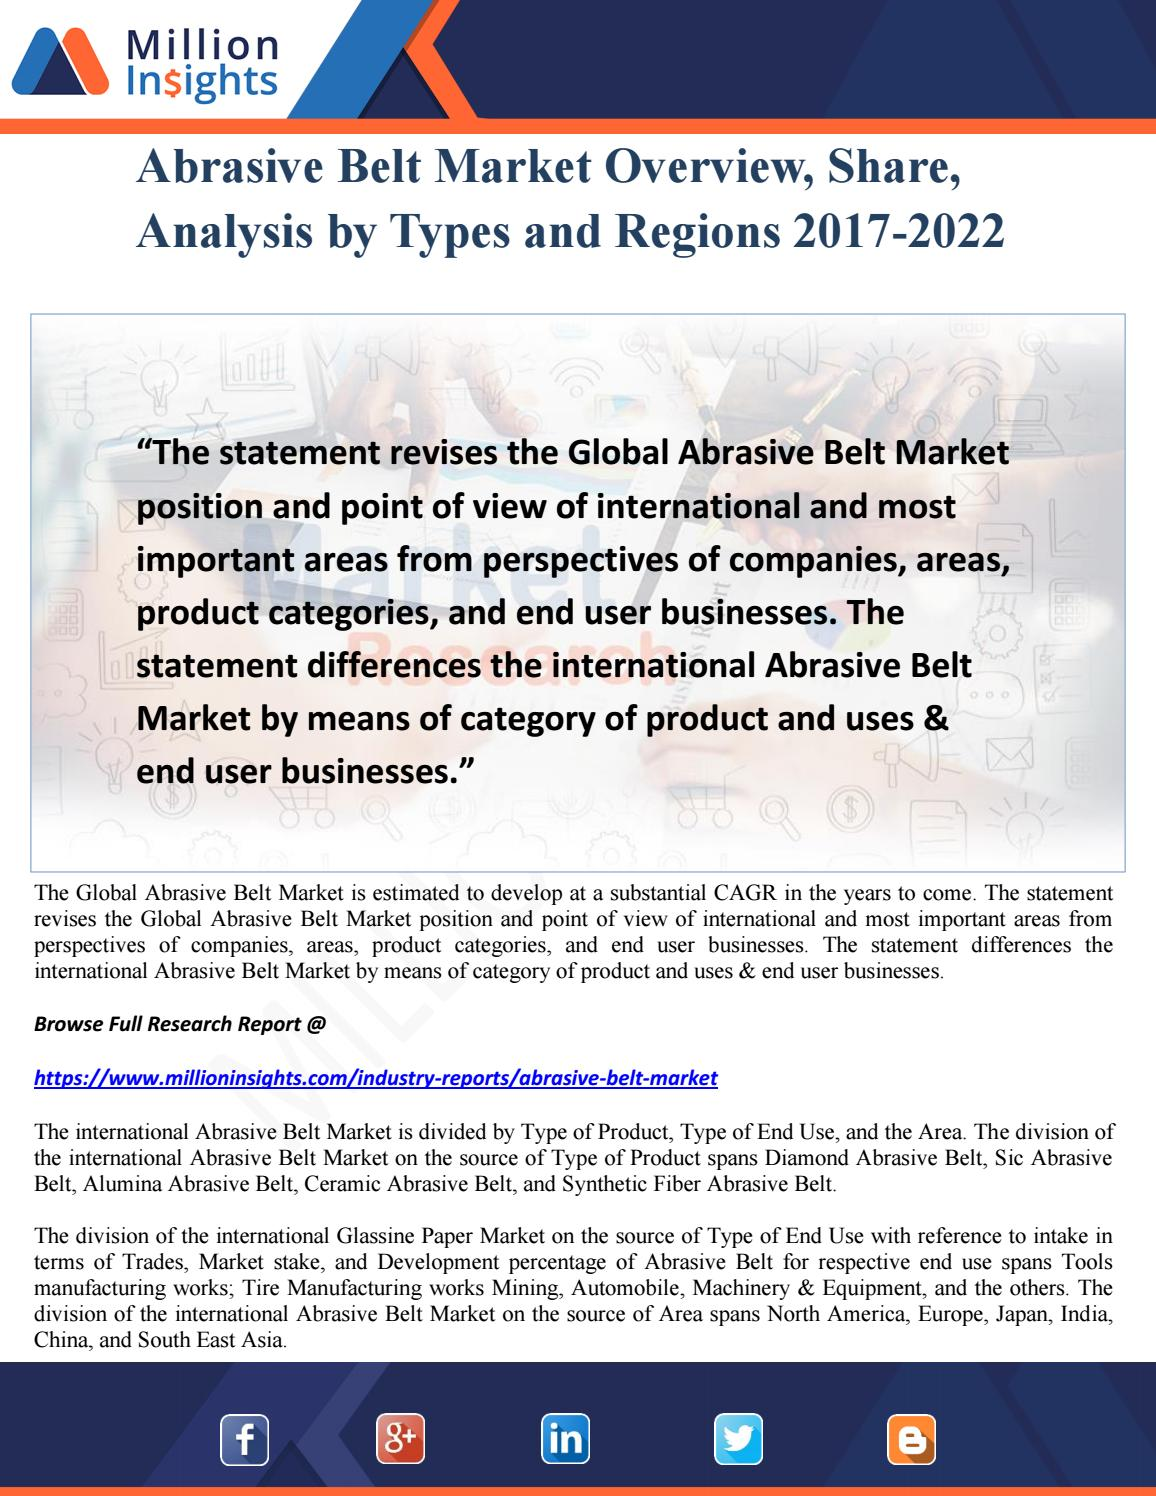 Abrasive Belt Market Overview, Share, Analysis by Types and